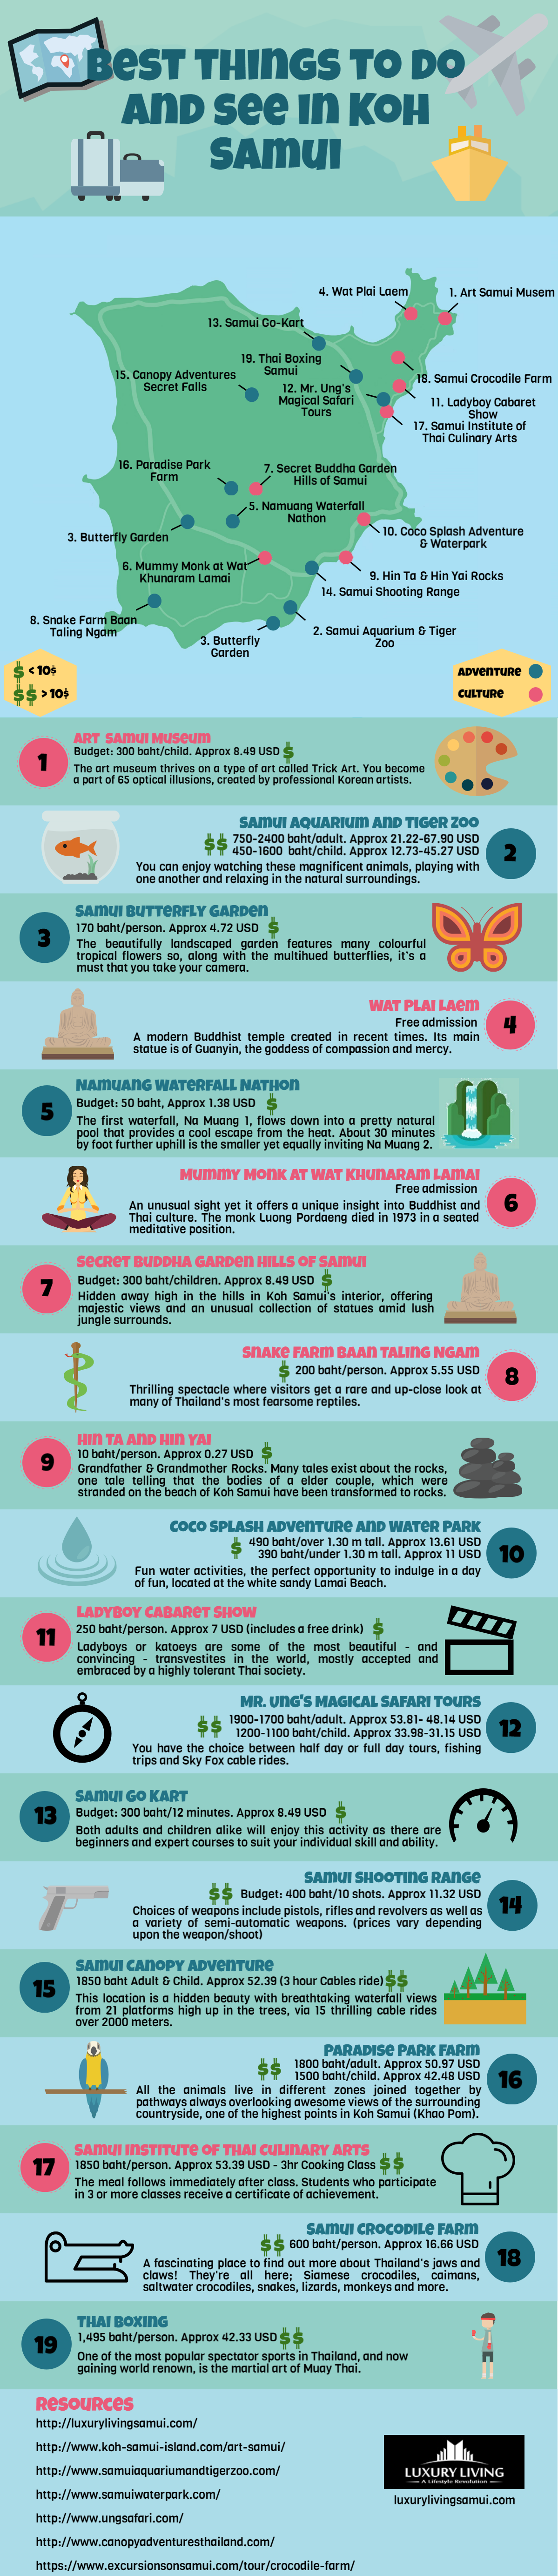 Infographic : Things to do and see in Koh Samui